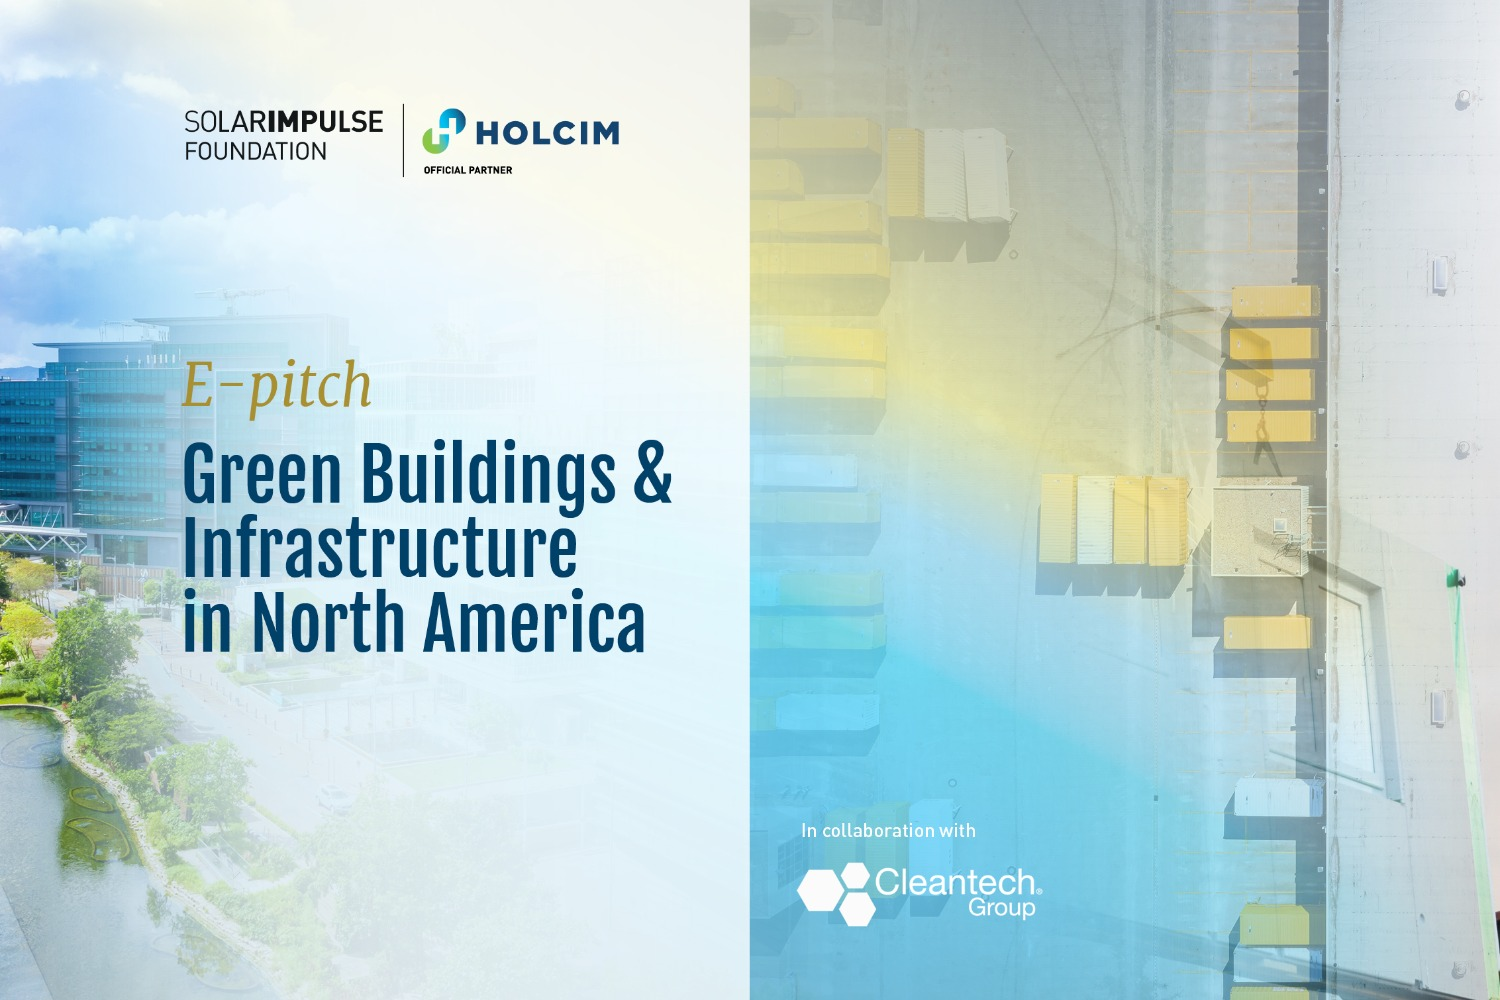 Green Buildings & Infrastructure in North America E-pitch en collaboration avec le Cleantech Group